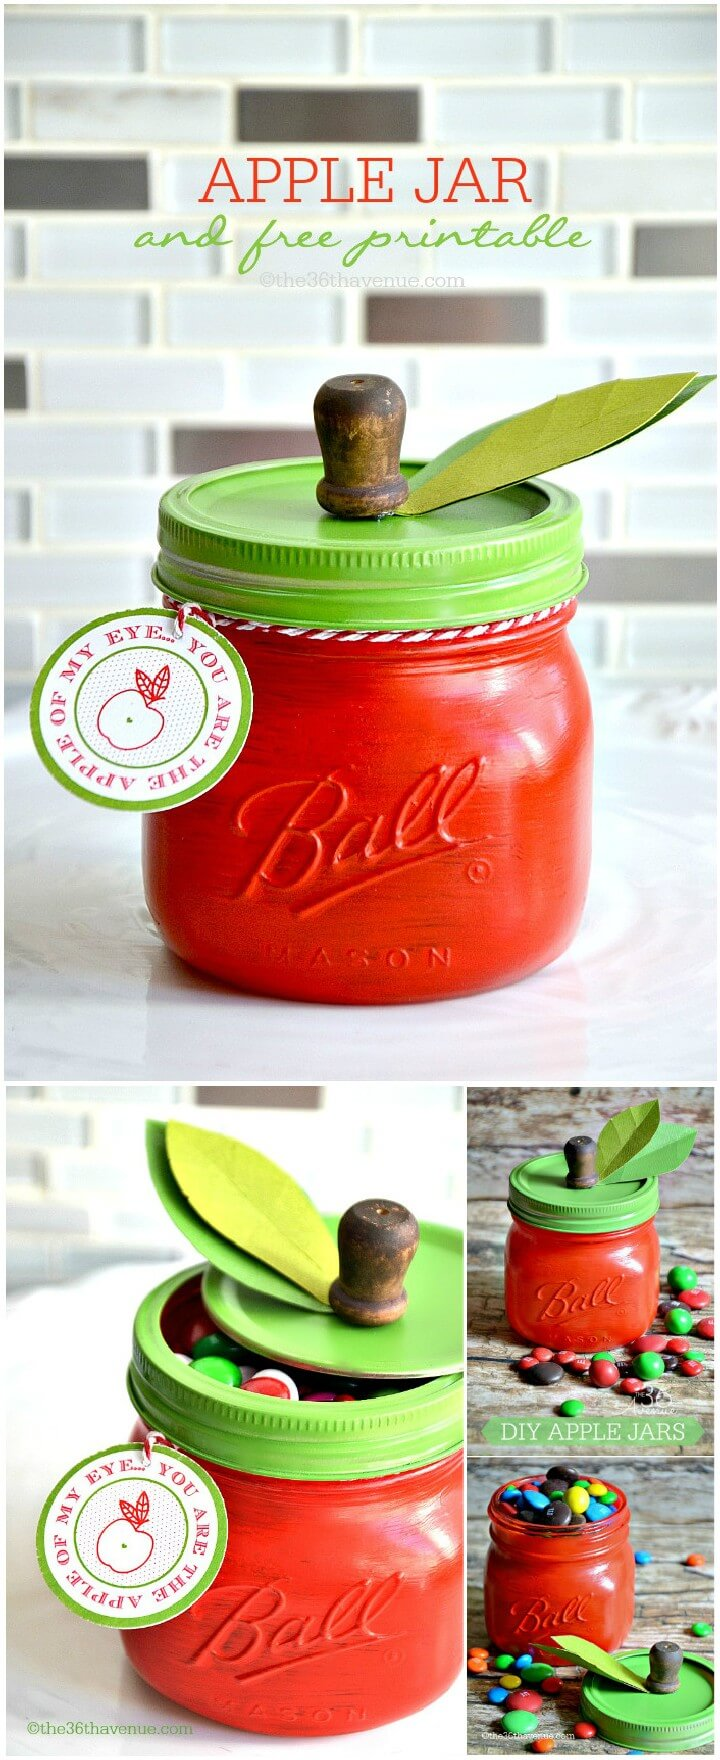 DIY Apple Mason Jar Gift with Free Printables